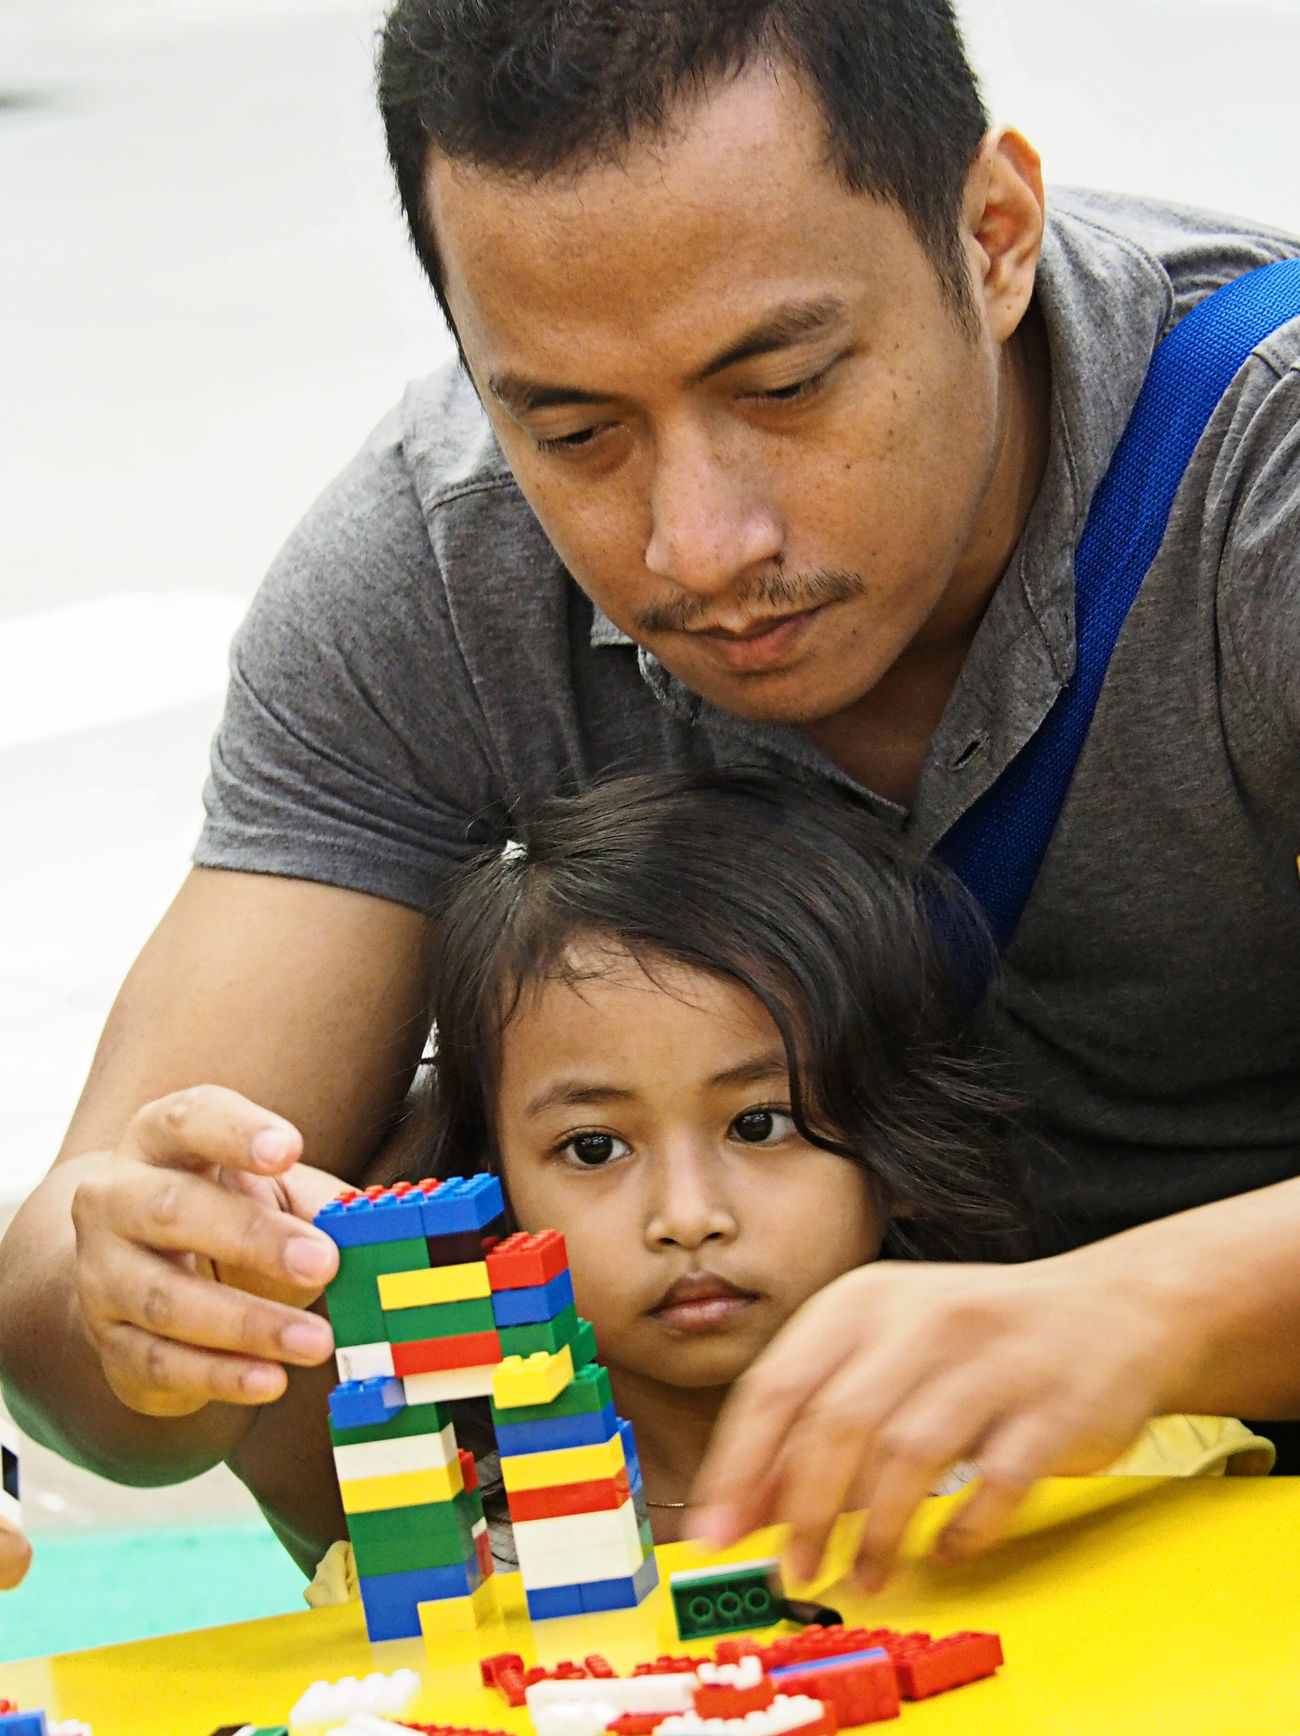 Just for the Little Girl... Kid Father And Daughter Interaction LEGO Playing Time Photo Of A Friend Fatherhood Moments